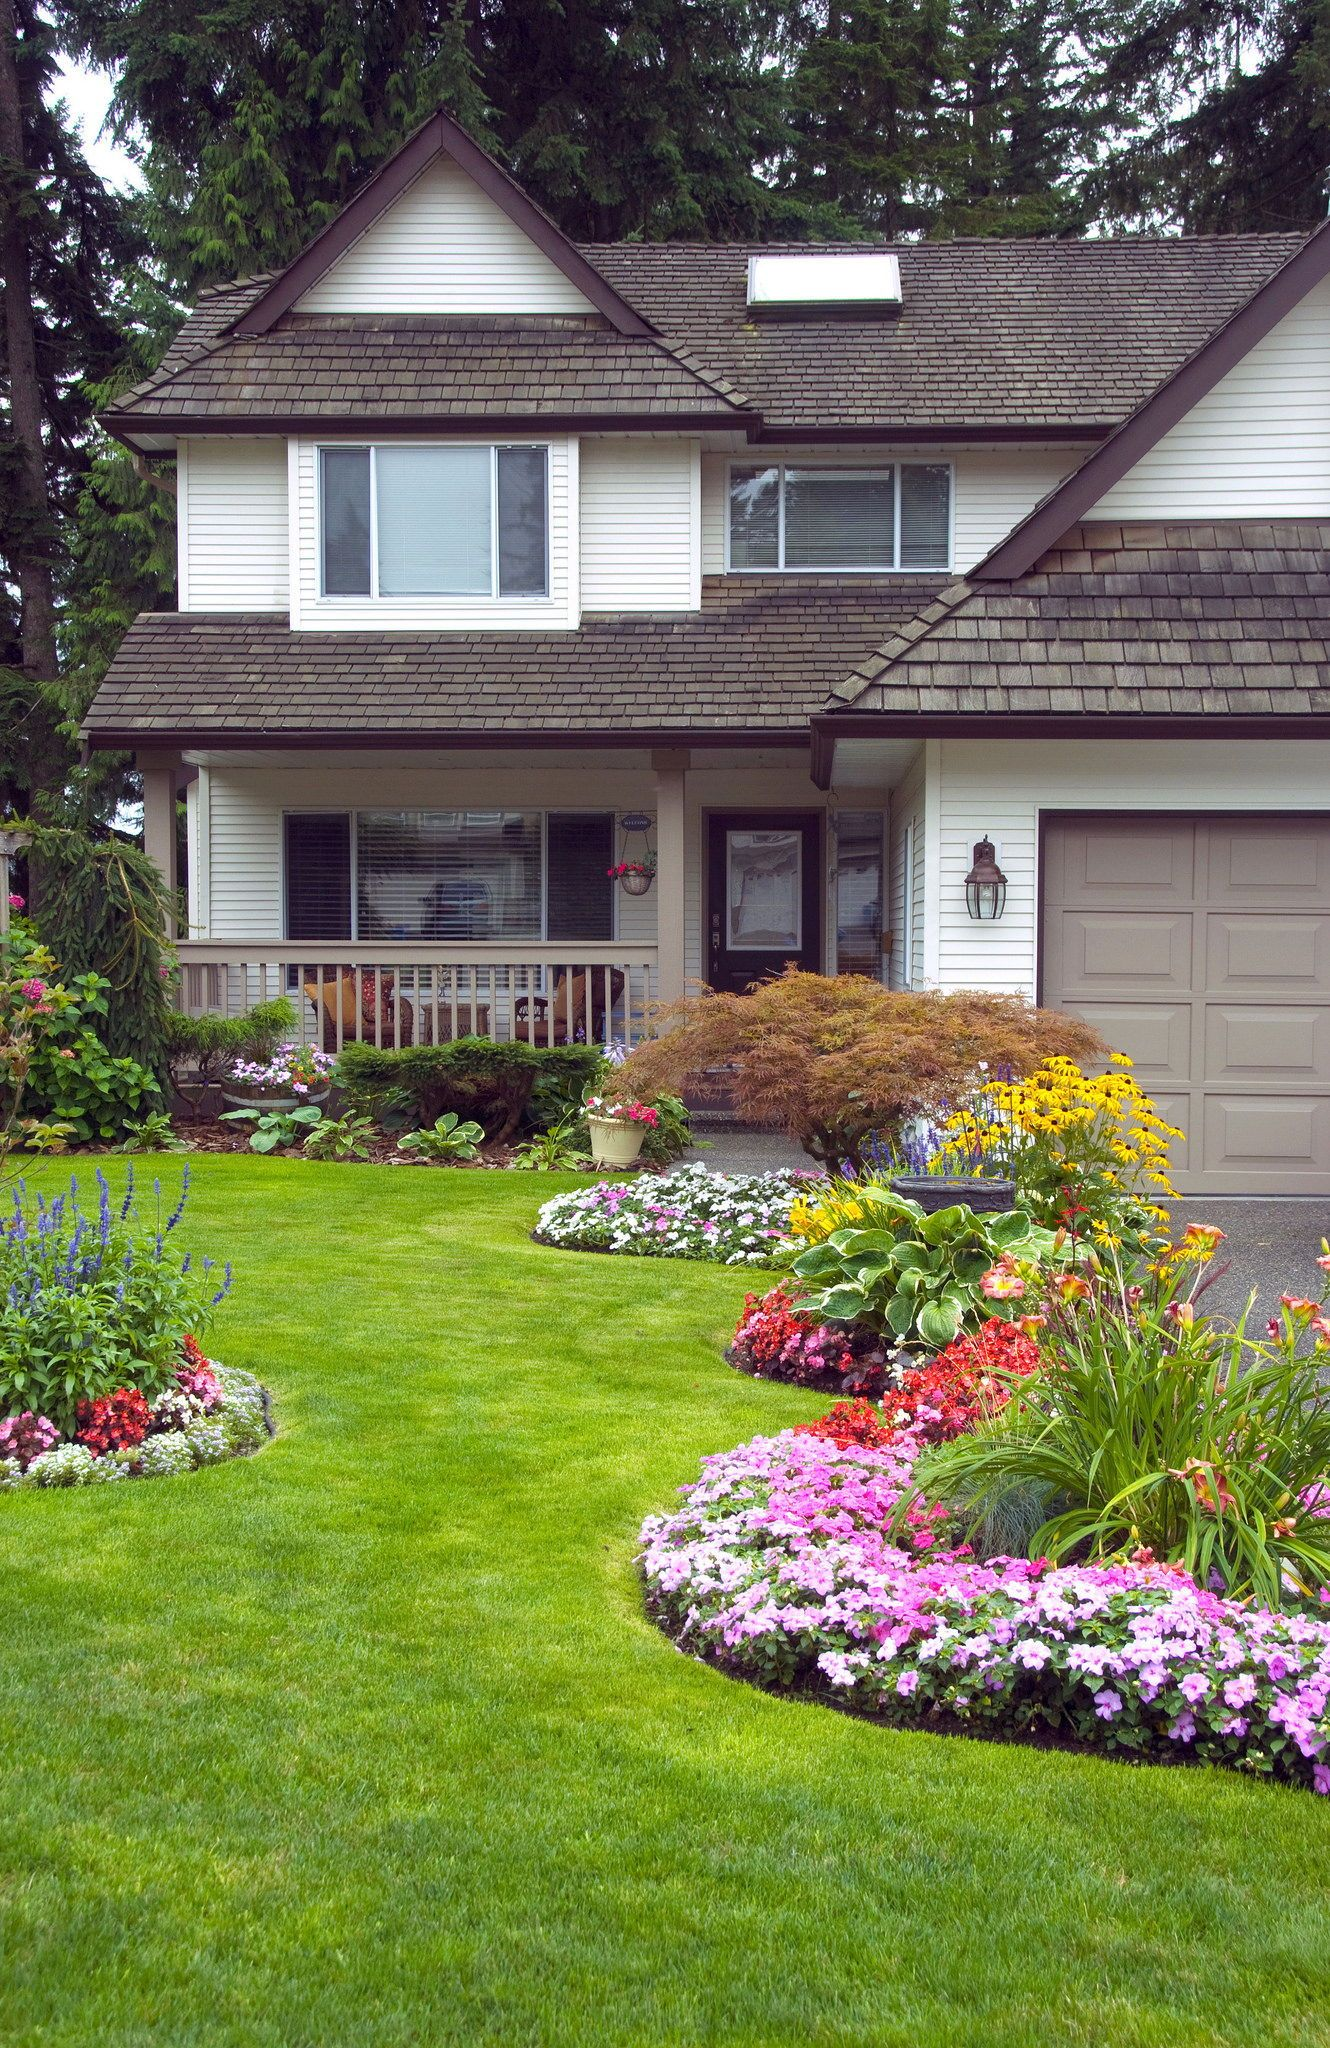 Amazing Landscaping Ideas For Small Budgets: Amazing Landscape Ideas Without Needing A Professional